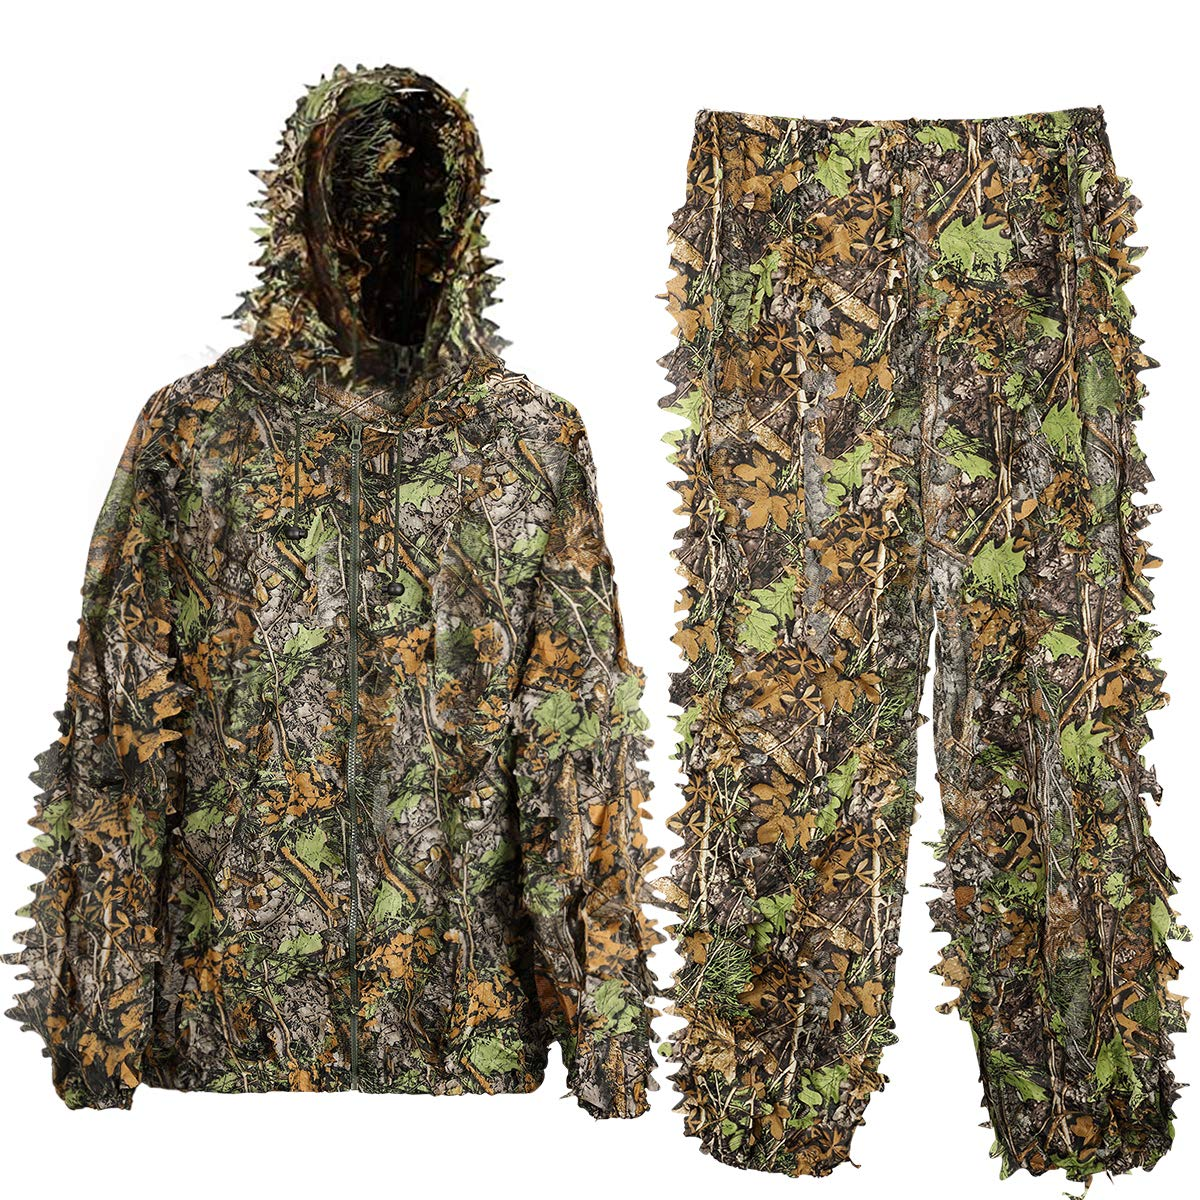 MOPHOTO Ghillie Suit